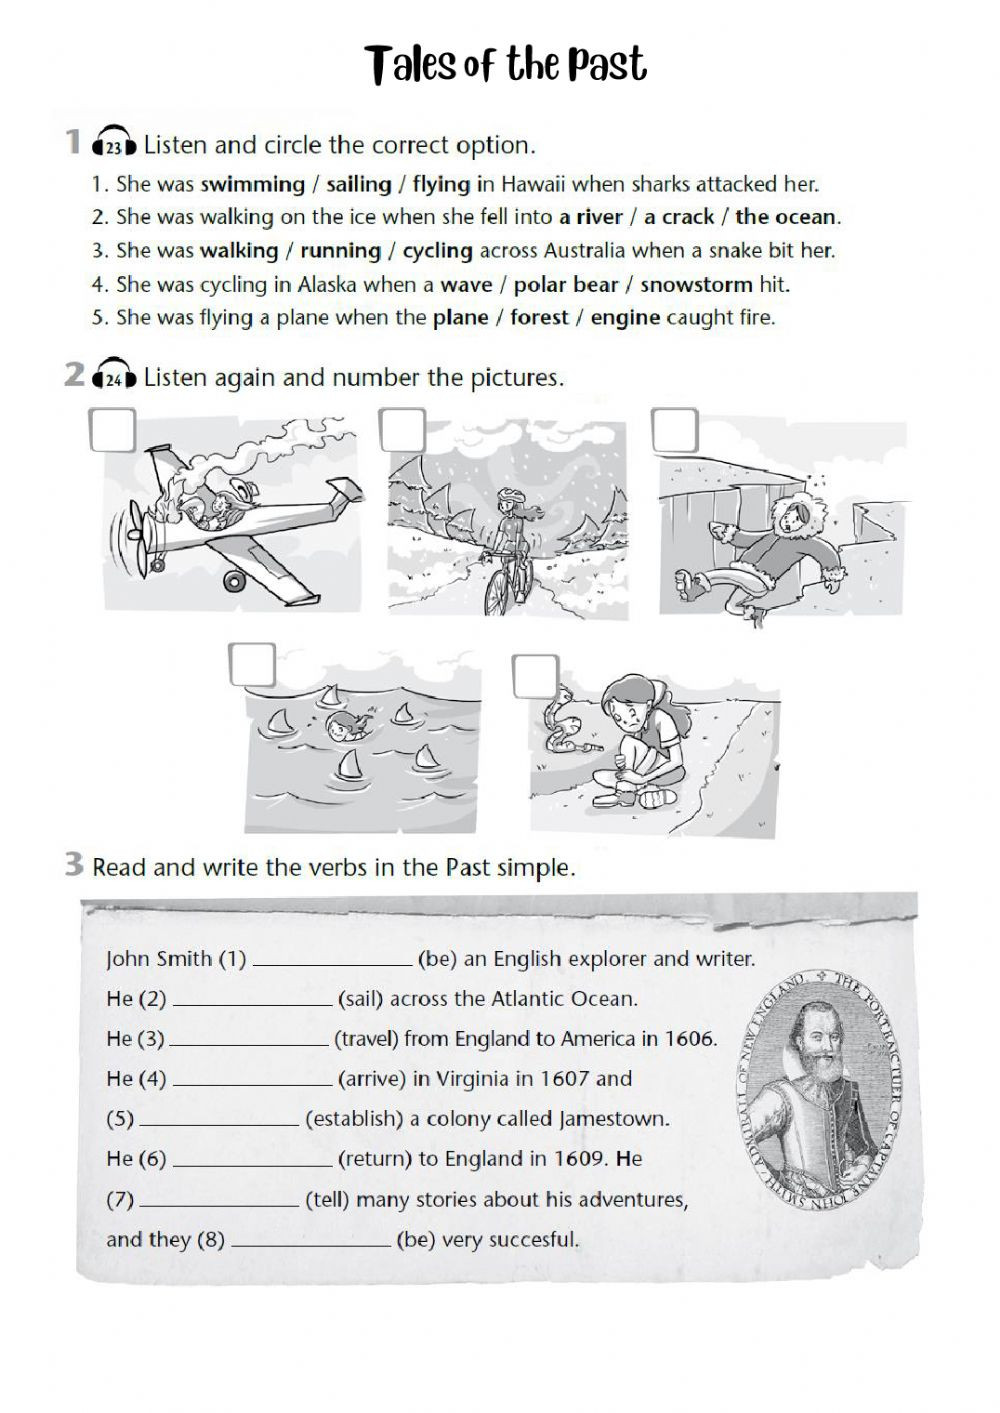 Jamestown Colony Worksheet 5th Grade Unit 2 Revision Interactive Worksheet